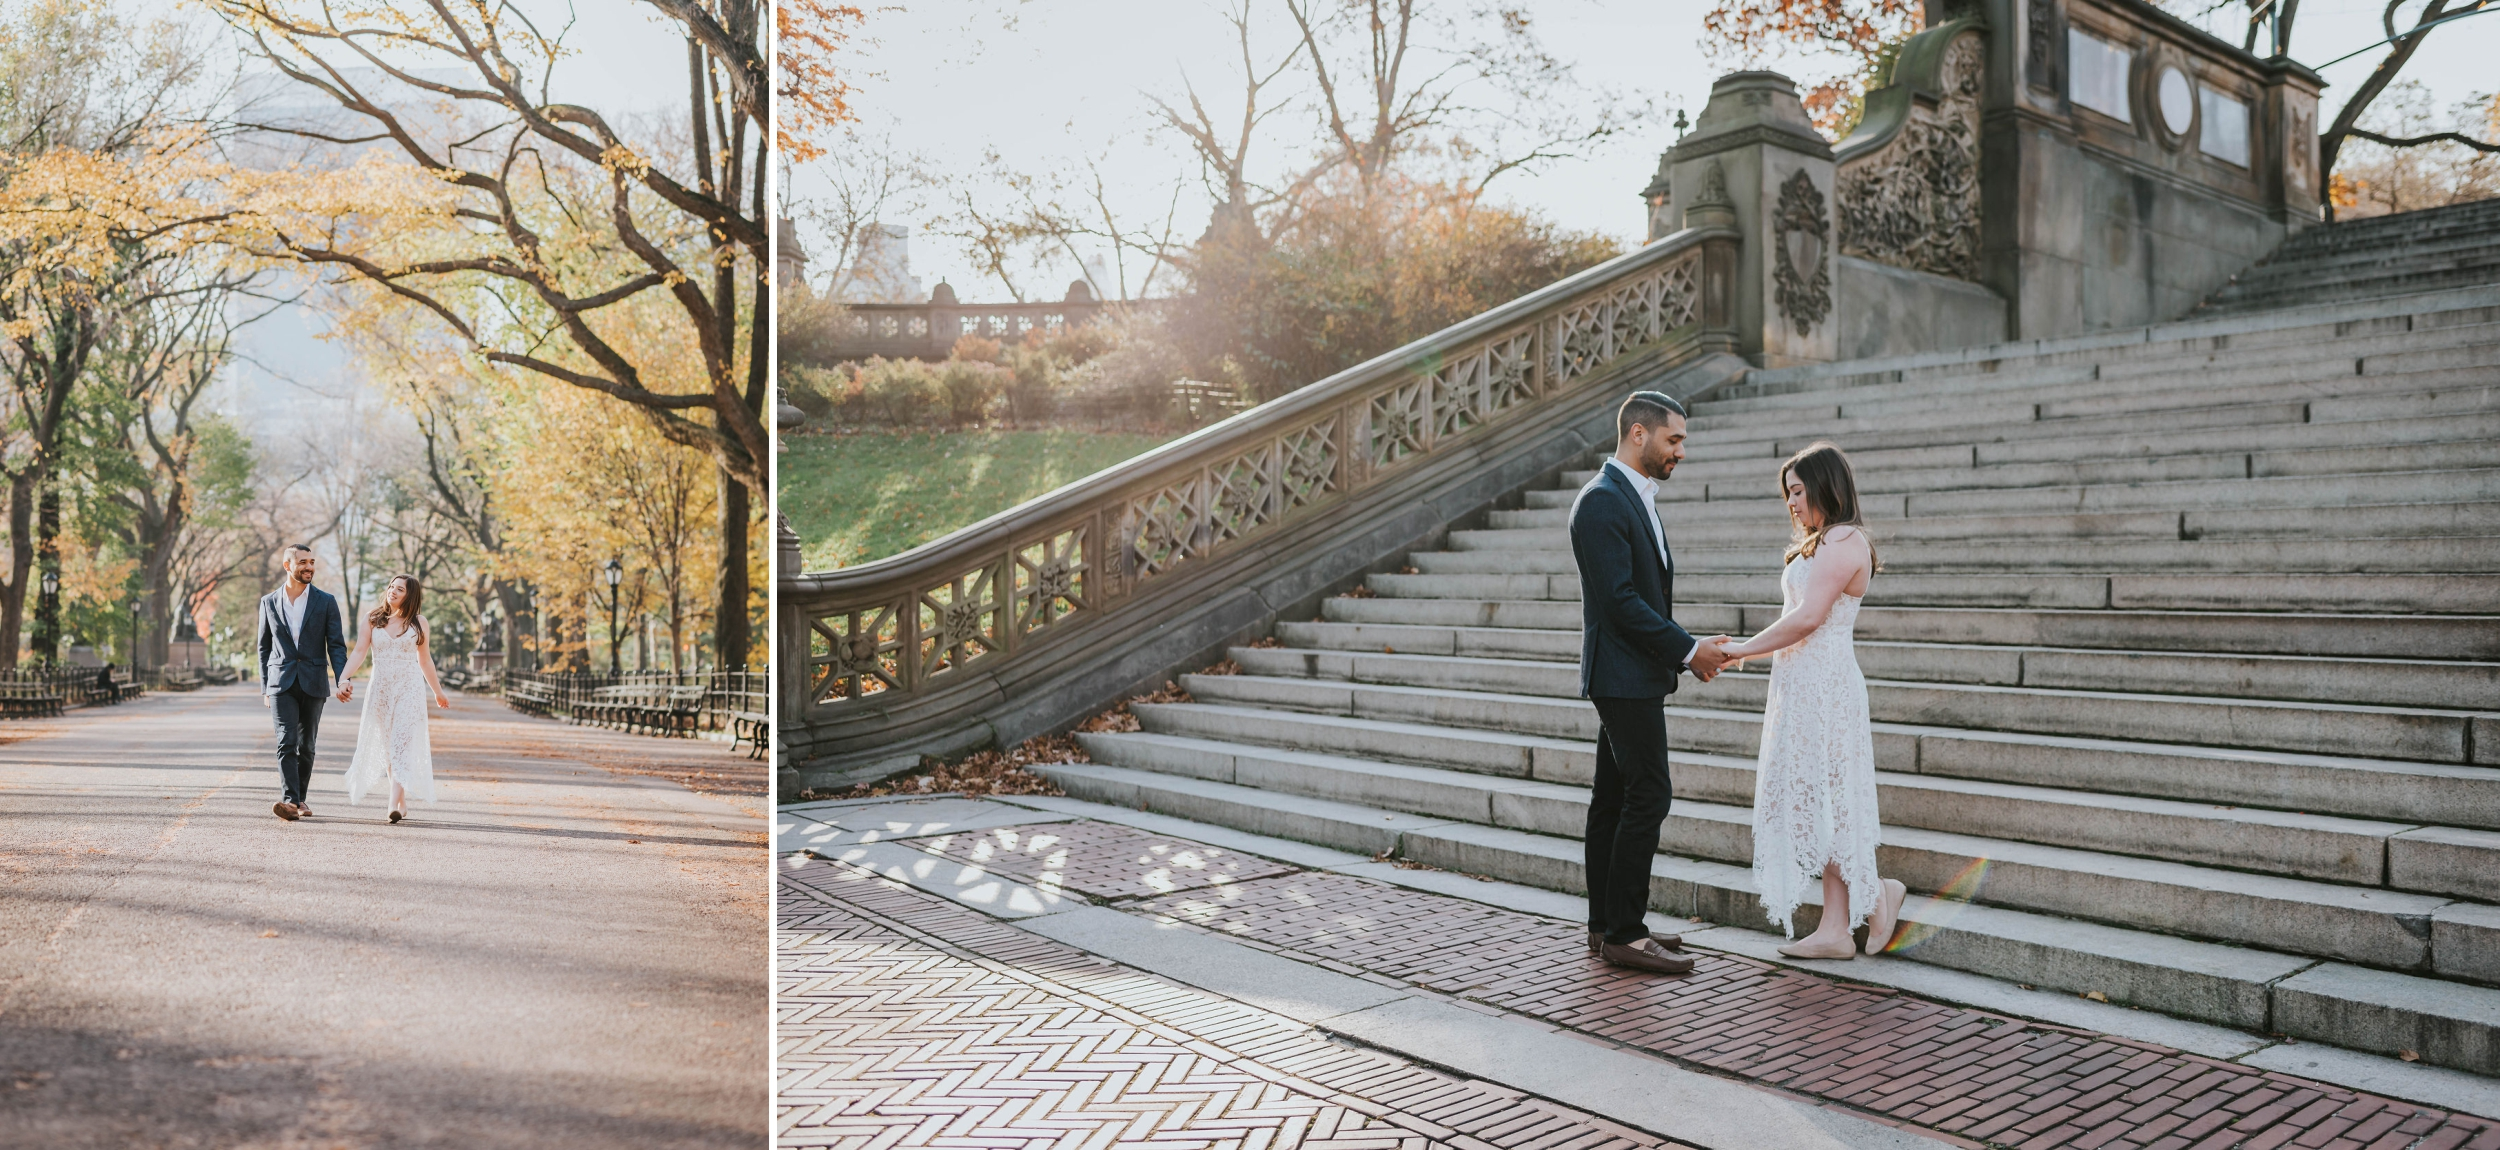 Rebecca and Darryn - Central Park Elopement NYC Manhattan 29.jpg